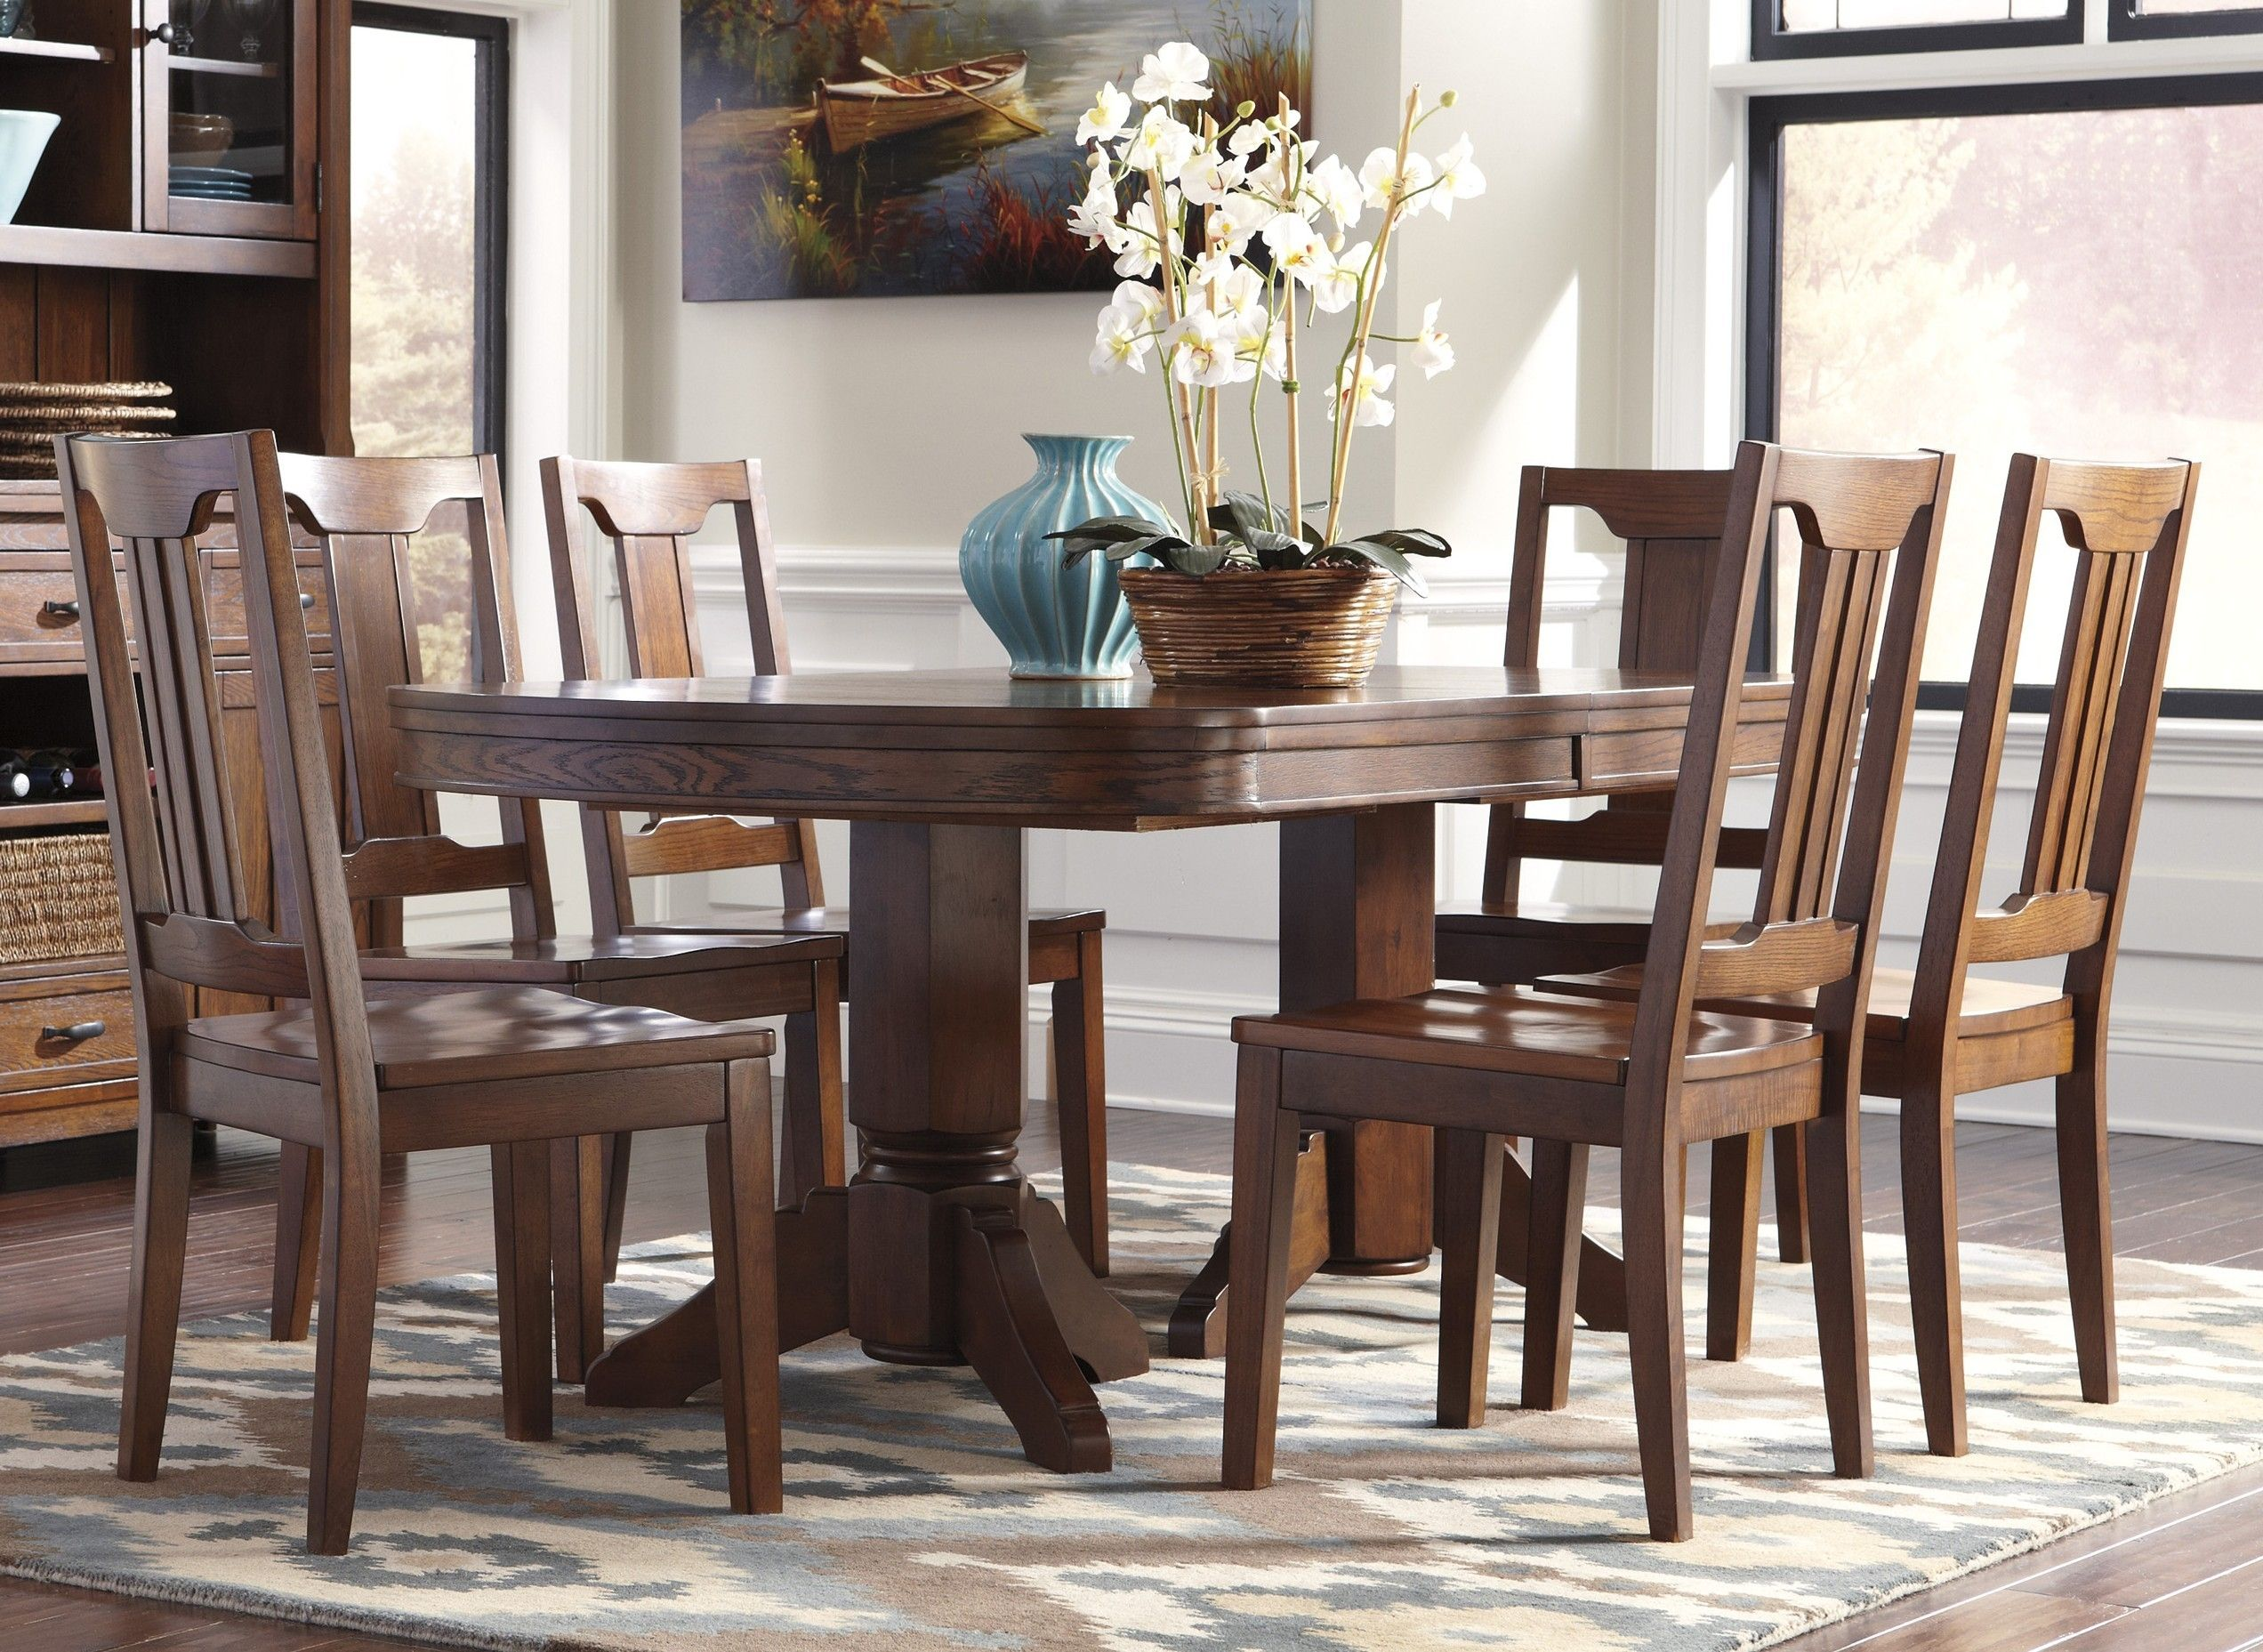 Nice Awesome Dining Table Ashley Furniture 88 For Home Designing Interesting Hamlyn Dining Room Set Design Ideas